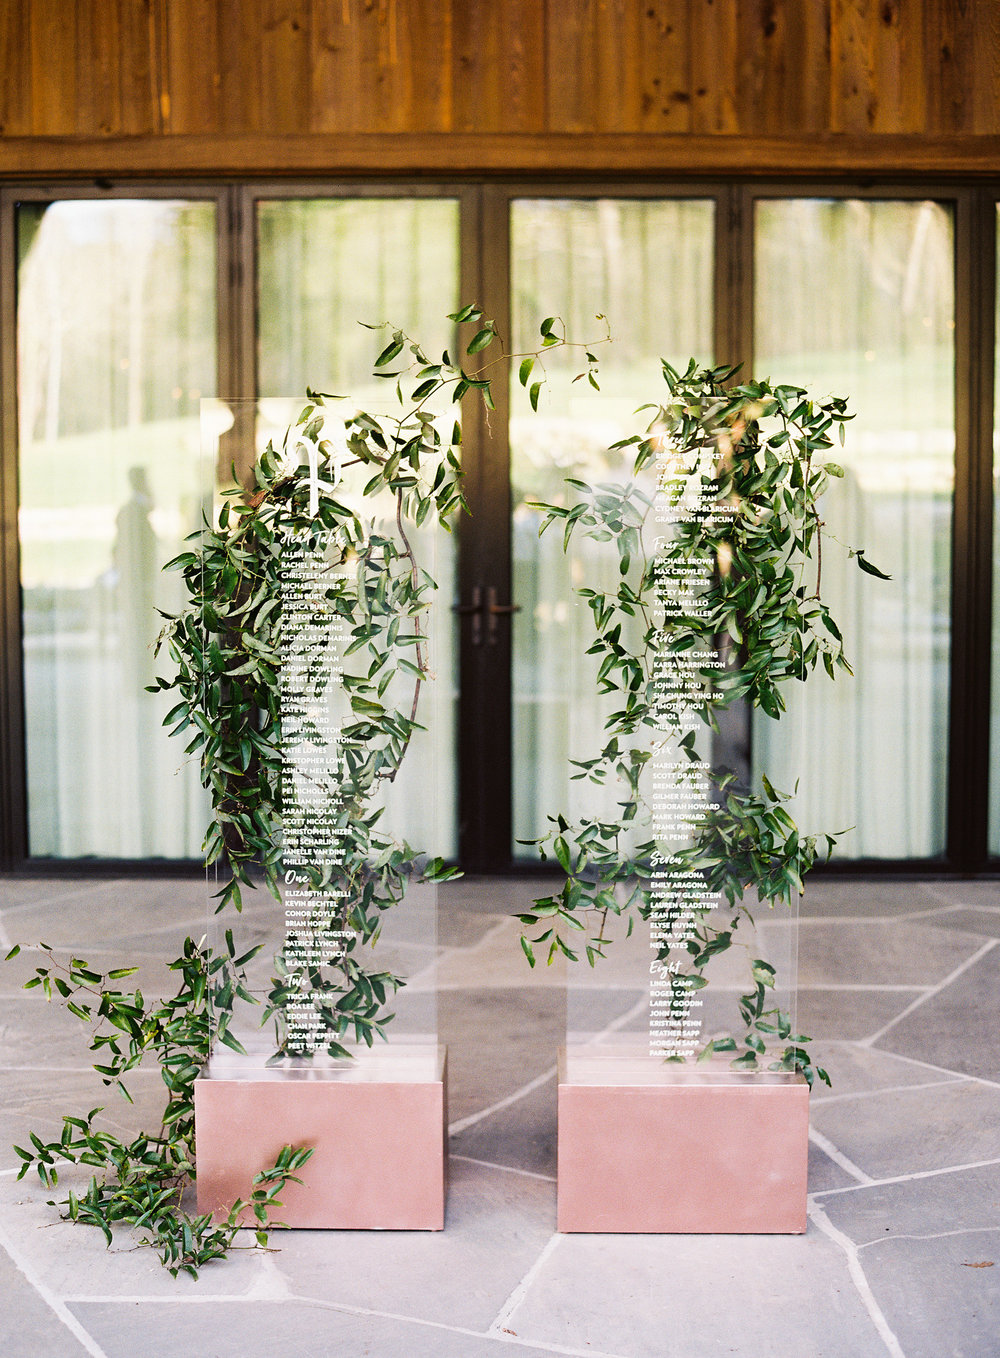 Blackberry Farm Wedding: acrylic guest seating chart with greenery   designed by Chavelli www.chavelli.com